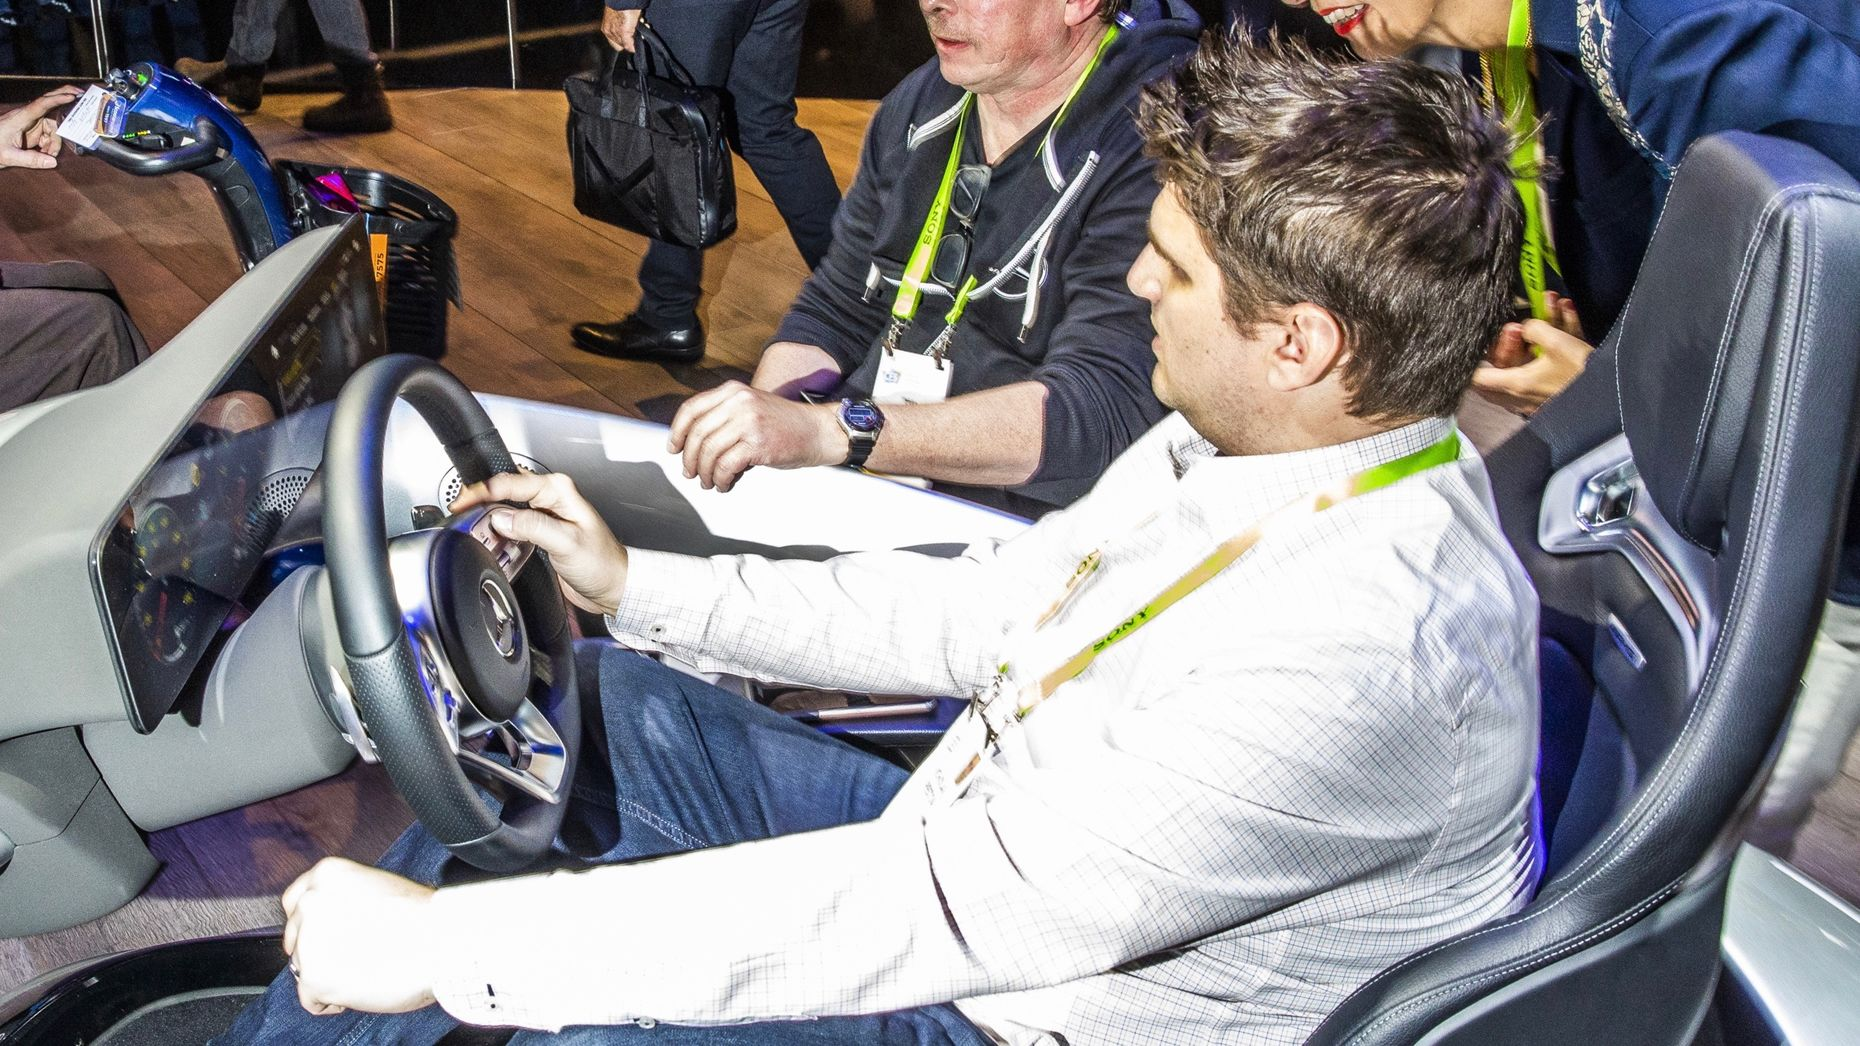 An attendee trying out the Mercedes Benz multimedia system at CES this week. Photo by Bloomberg